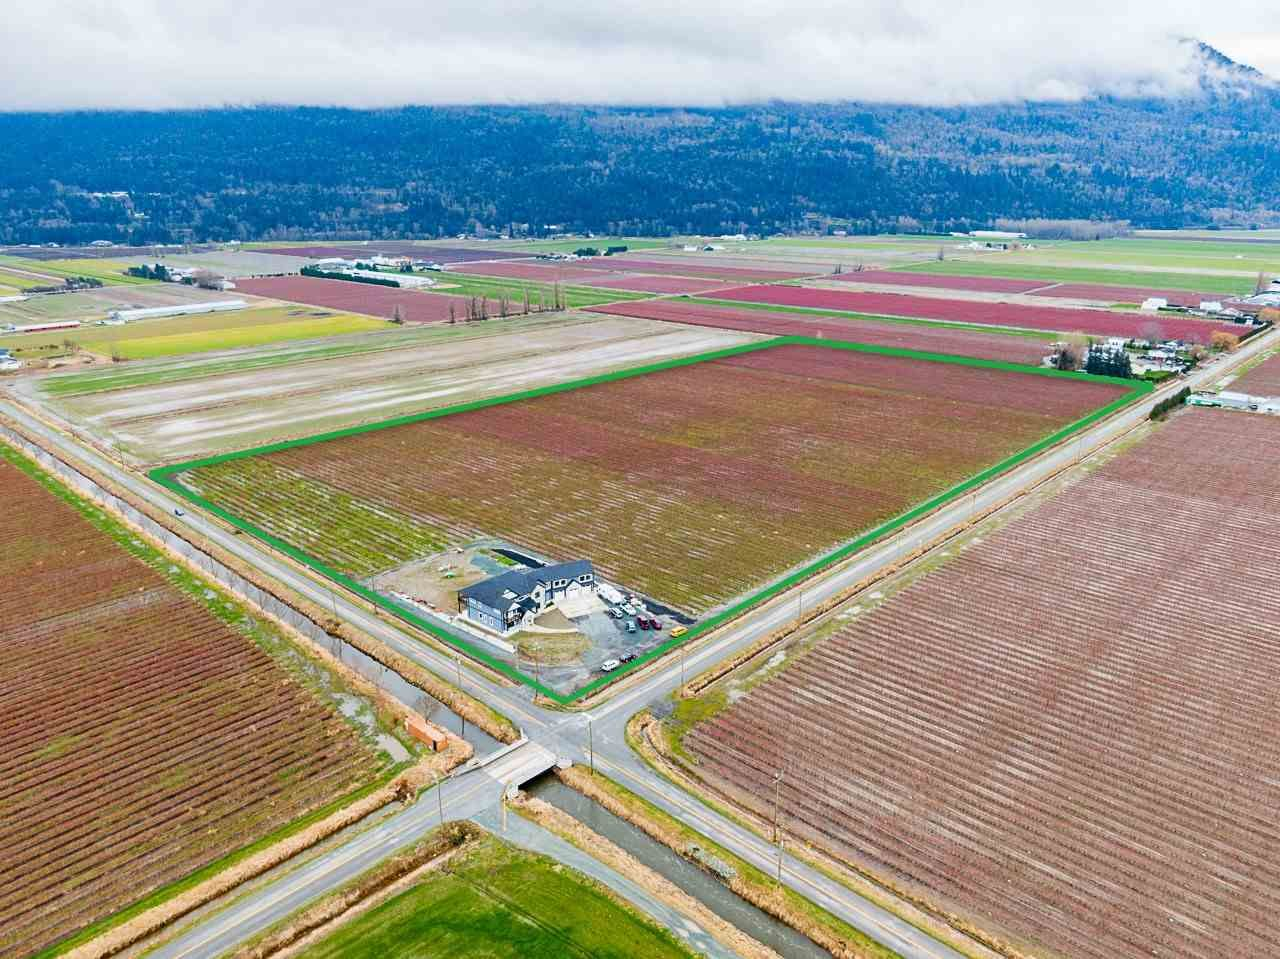 Main Photo: 40320 NO. 5 Road in Abbotsford: Sumas Prairie Agri-Business for sale : MLS®# C8036514